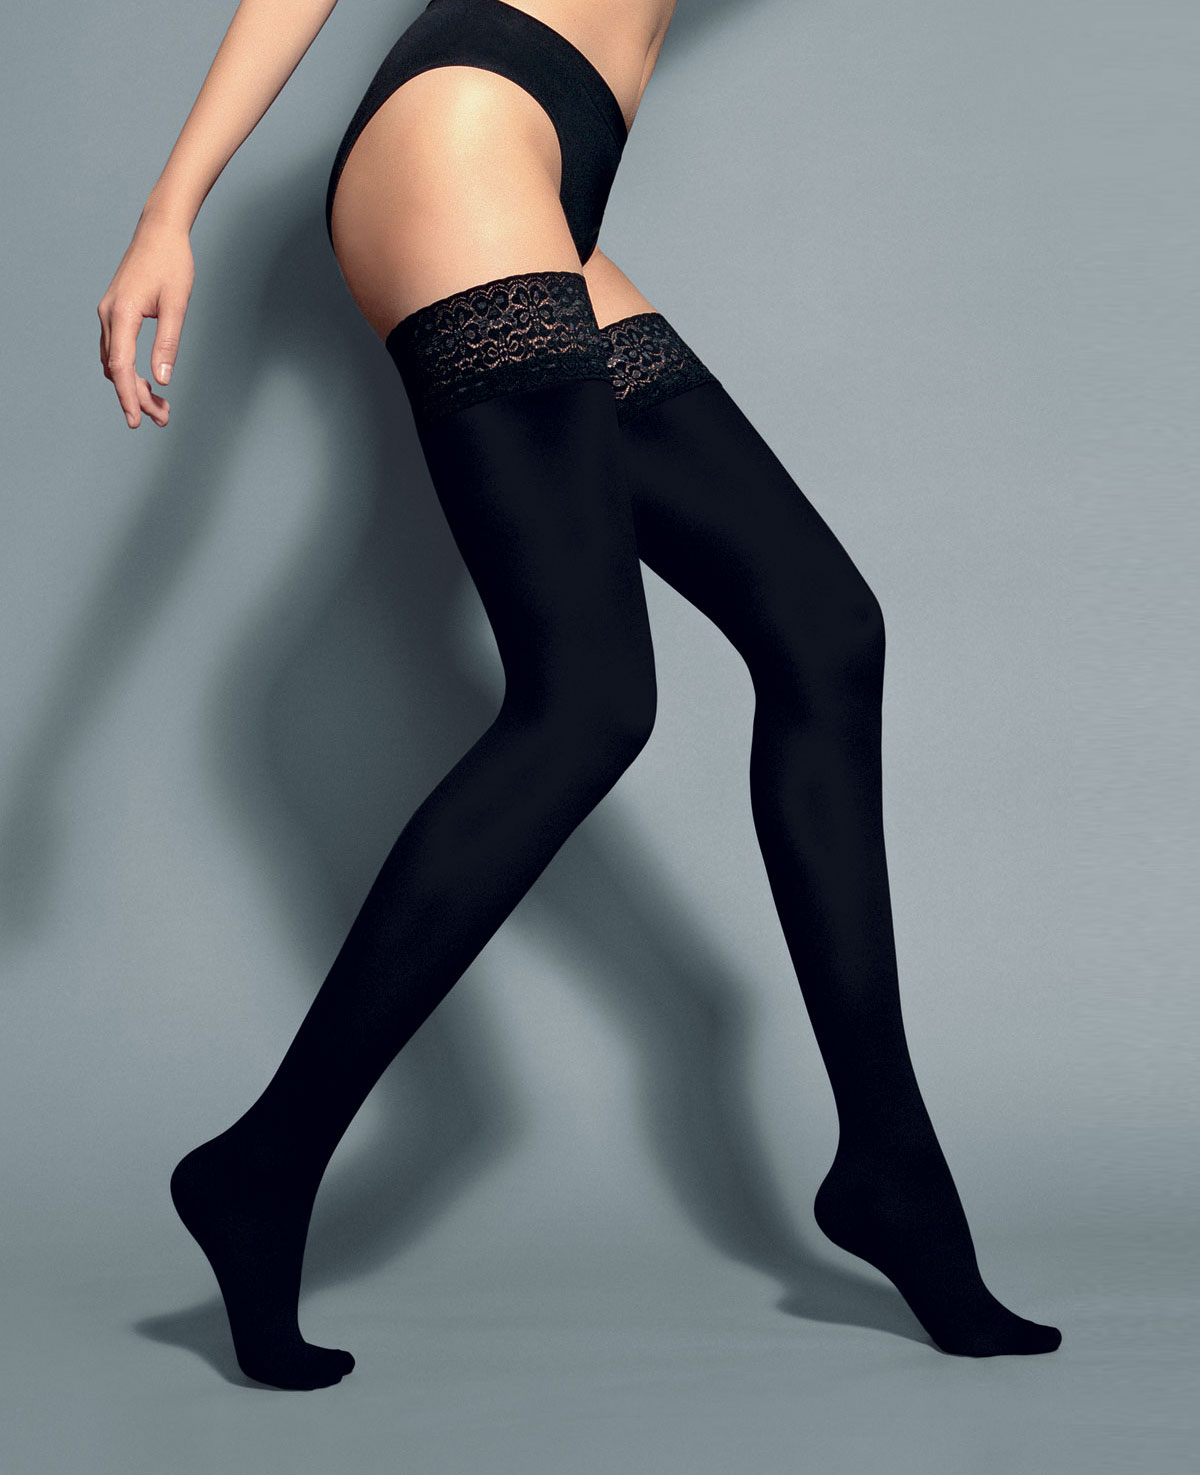 a11573735f5 Veneziana Fiona 60 Denier Opaque Hold Ups at Stockings Direct